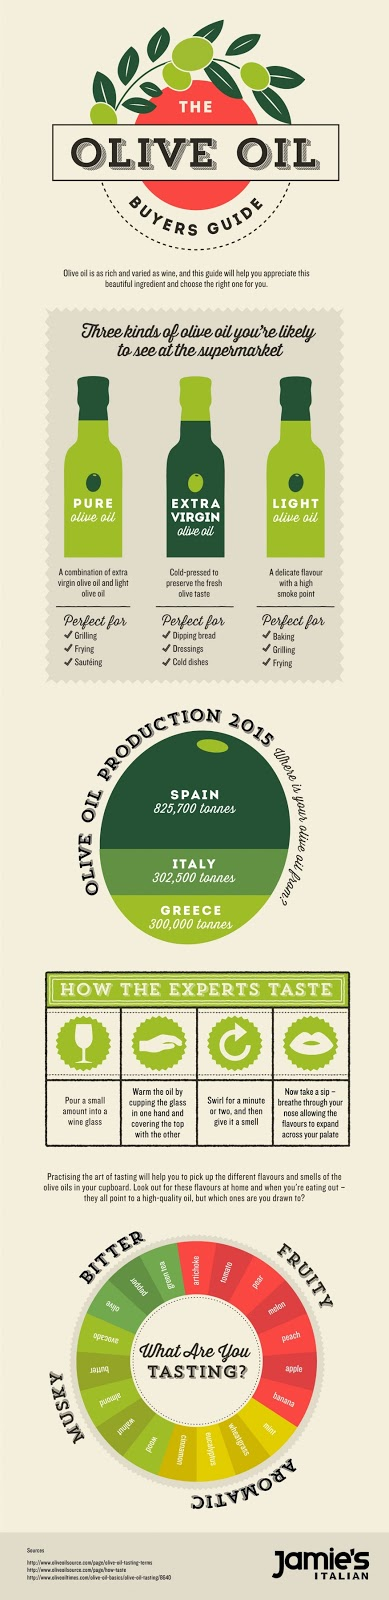 Jamie's Italian Buyers Guide To Olive Oil